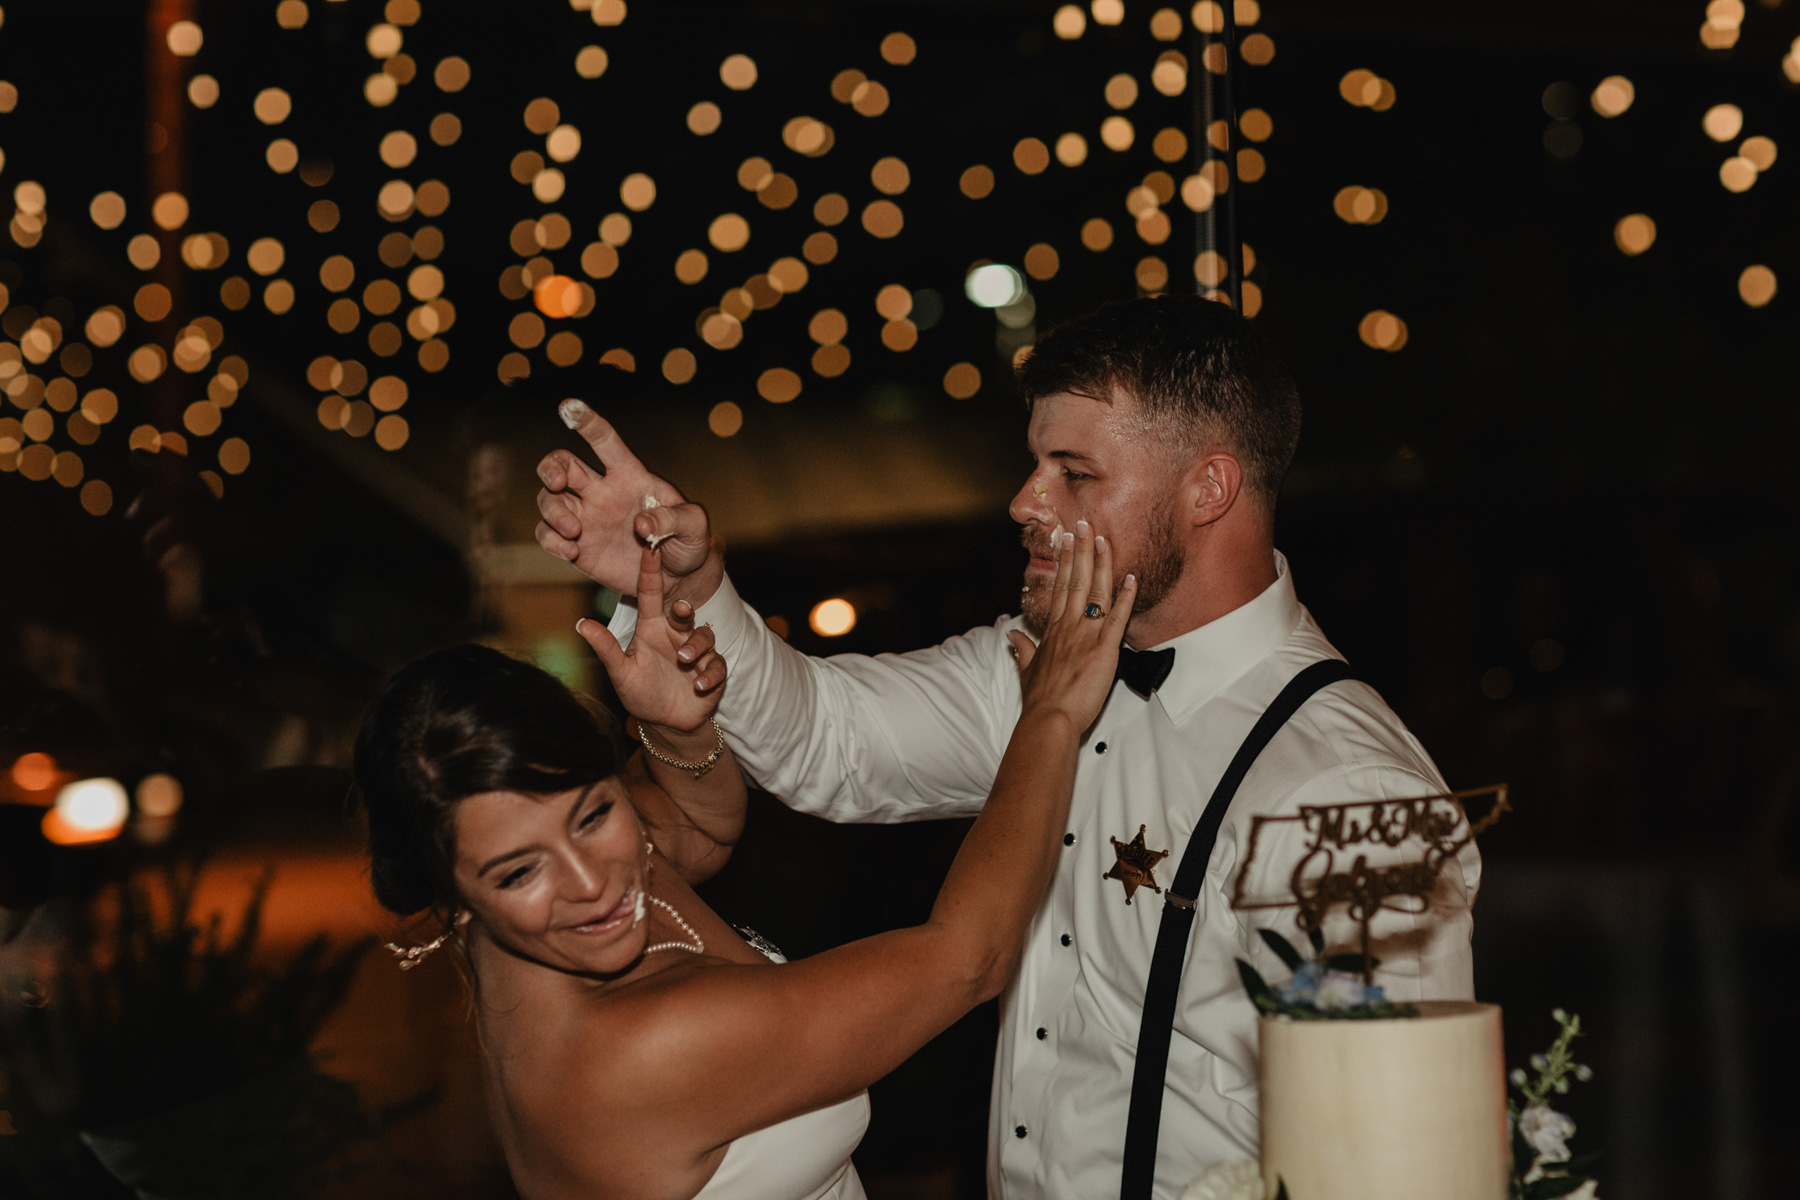 Wedding Venues in Knoxville TN | The Press Room